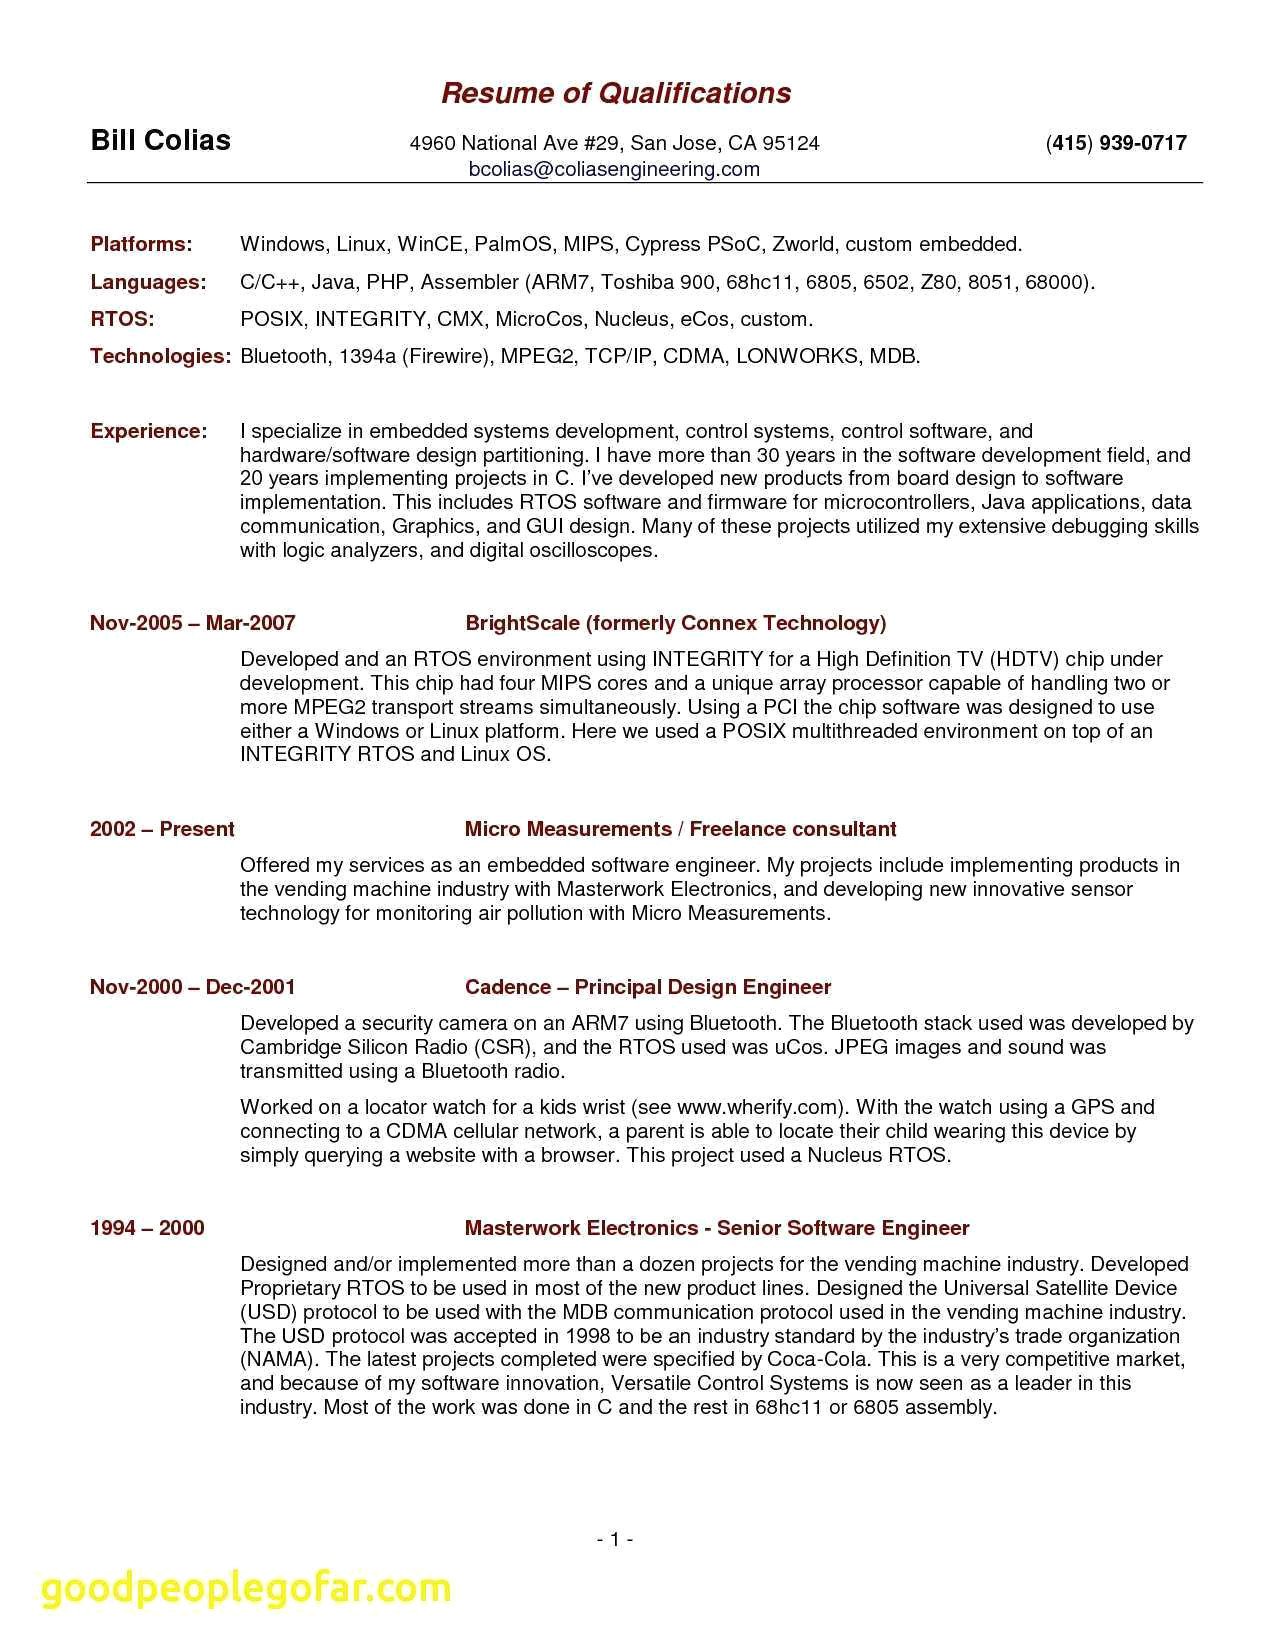 Service Industry Resume Examples - 40 Best Skills for Resumes